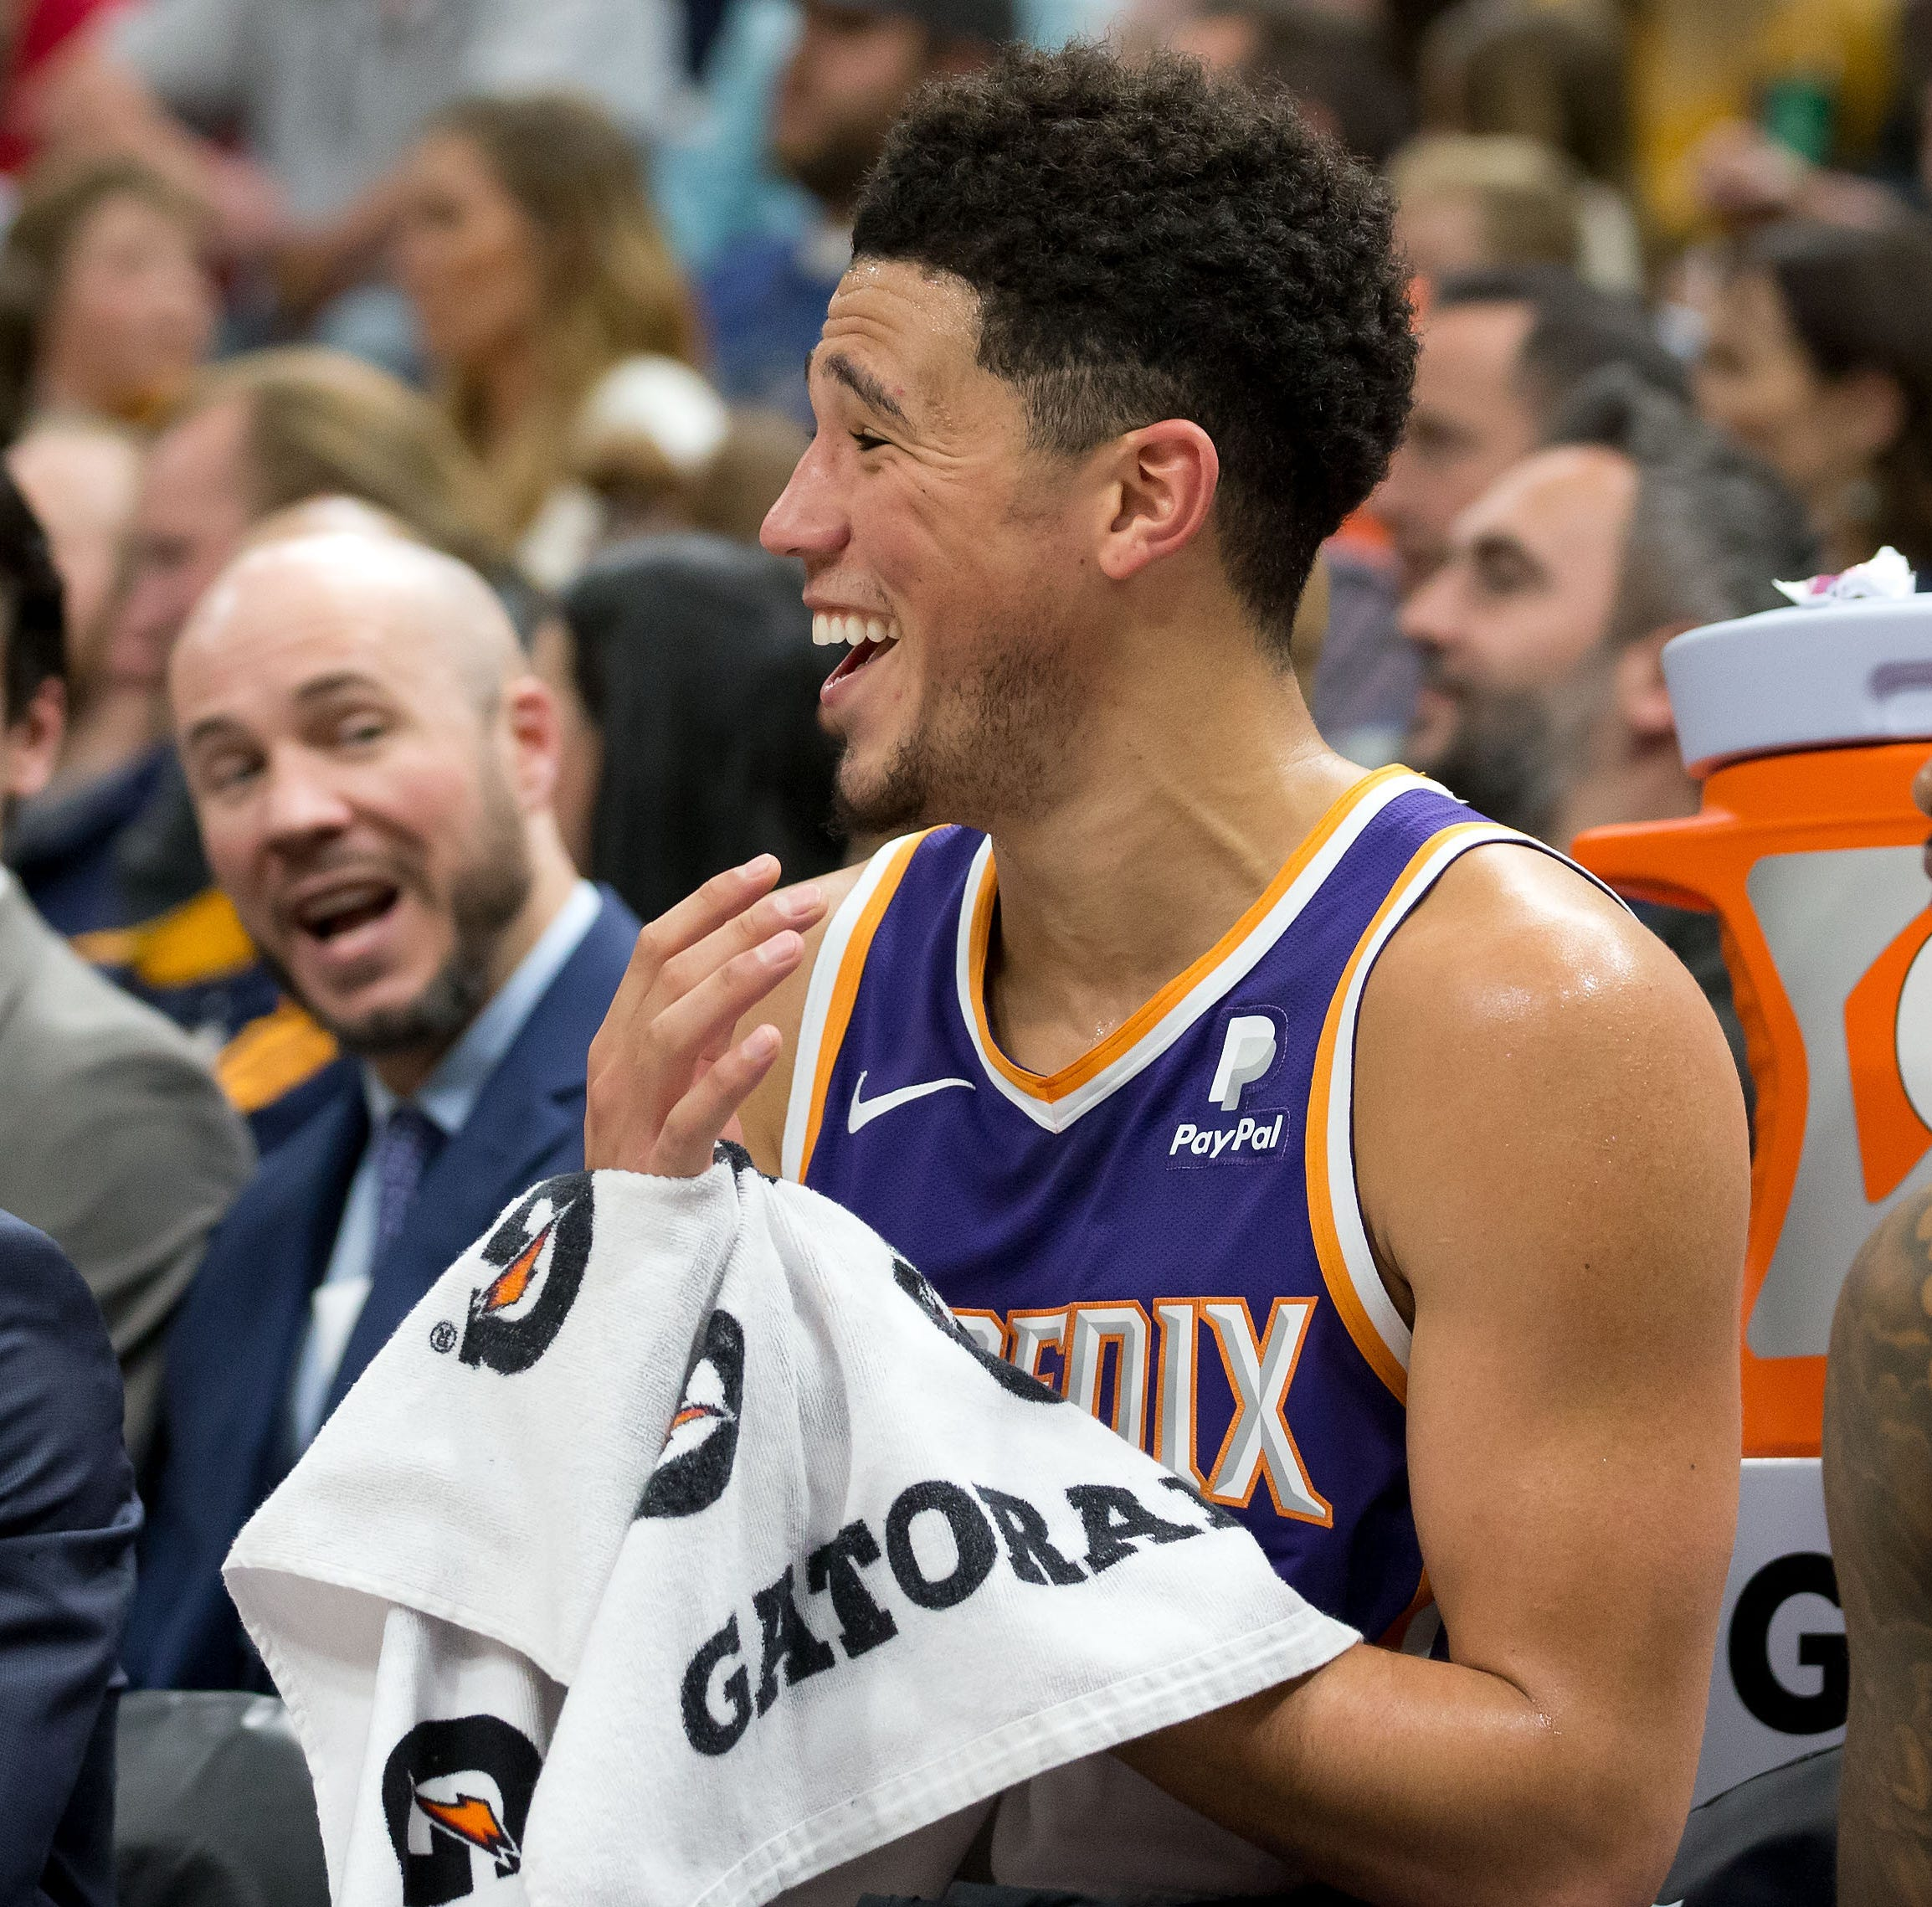 Devin Booker slammed by NBA pundits after historic scoring performances with Phoenix Suns